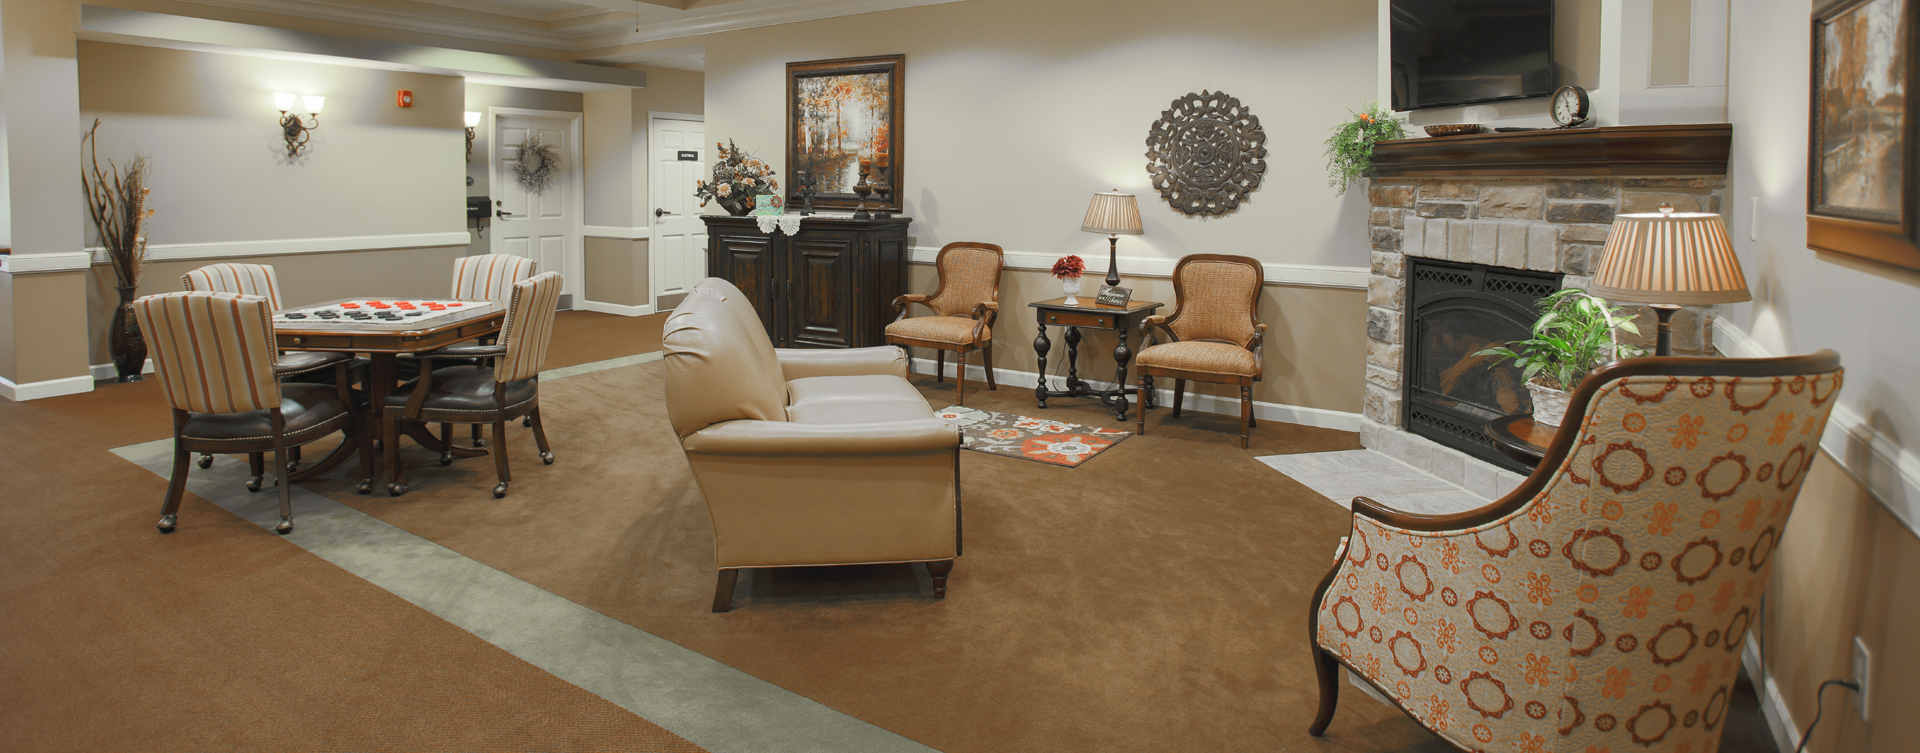 Enjoy a good book in the sitting area at Bickford of Carmel